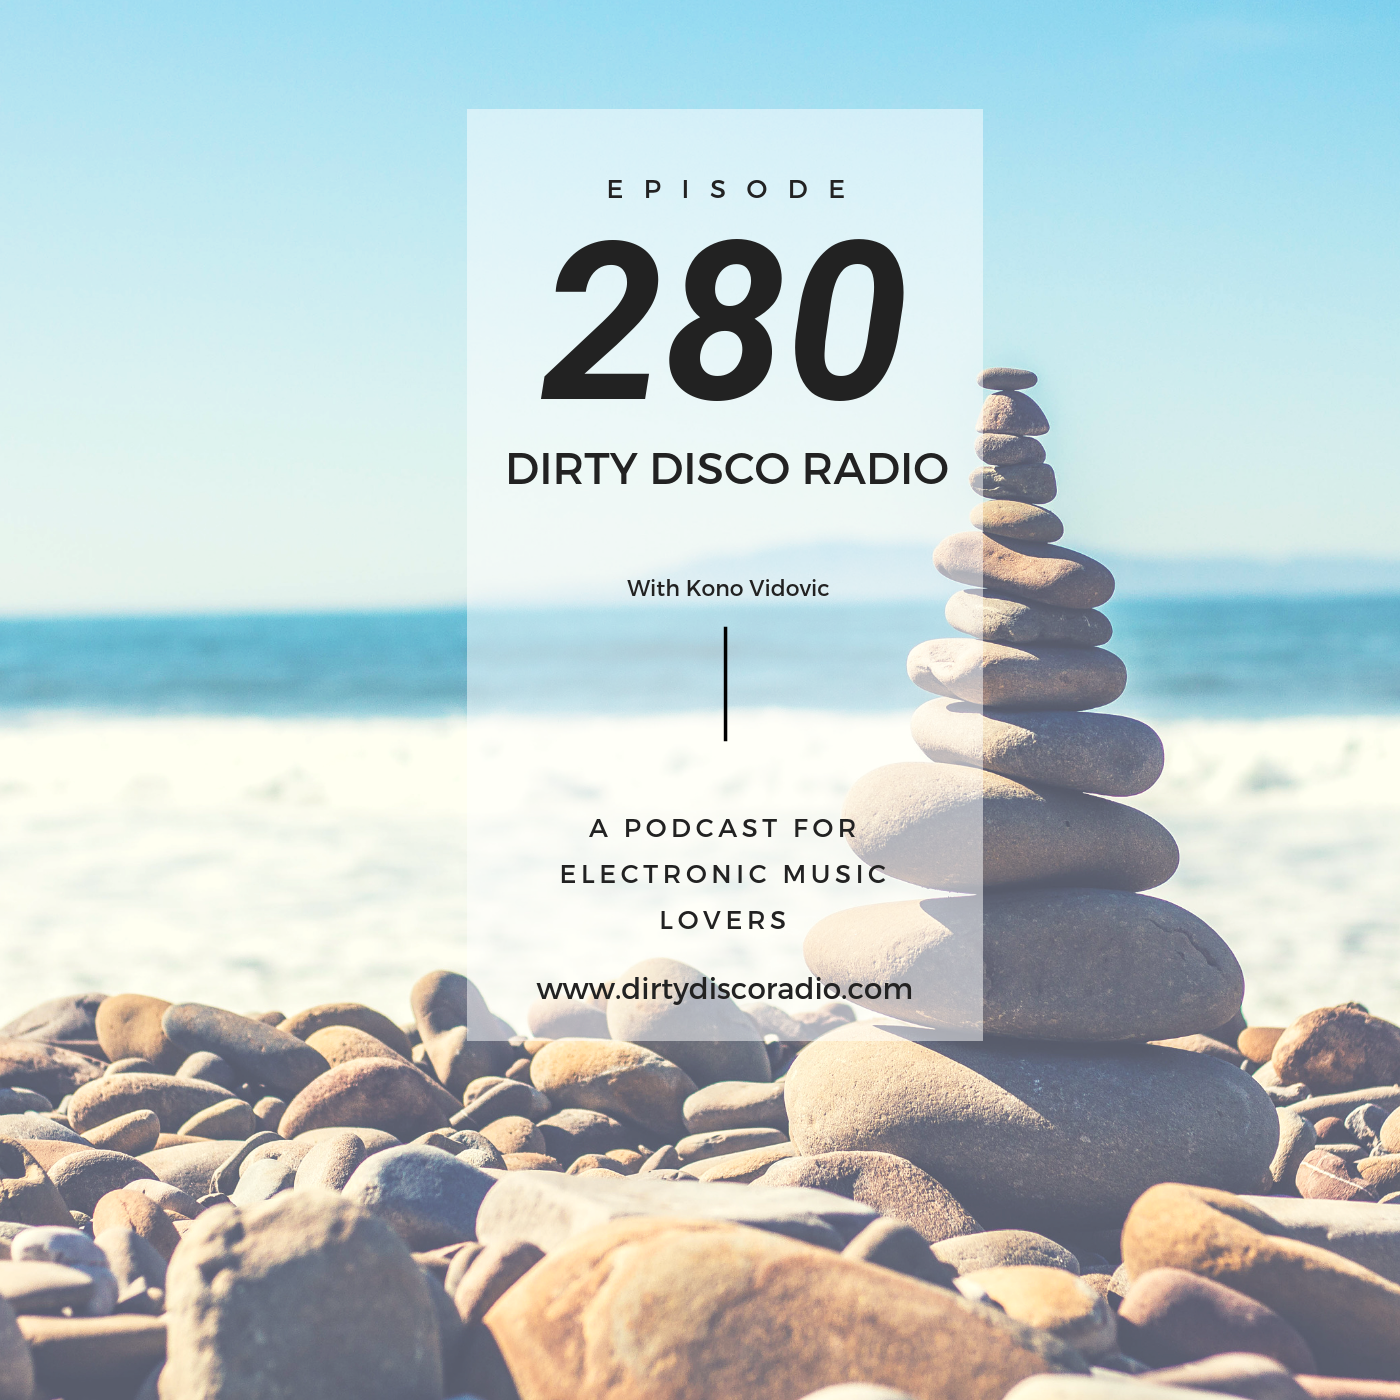 Dirty Disco 280 - Do i have a life, or am i just living?